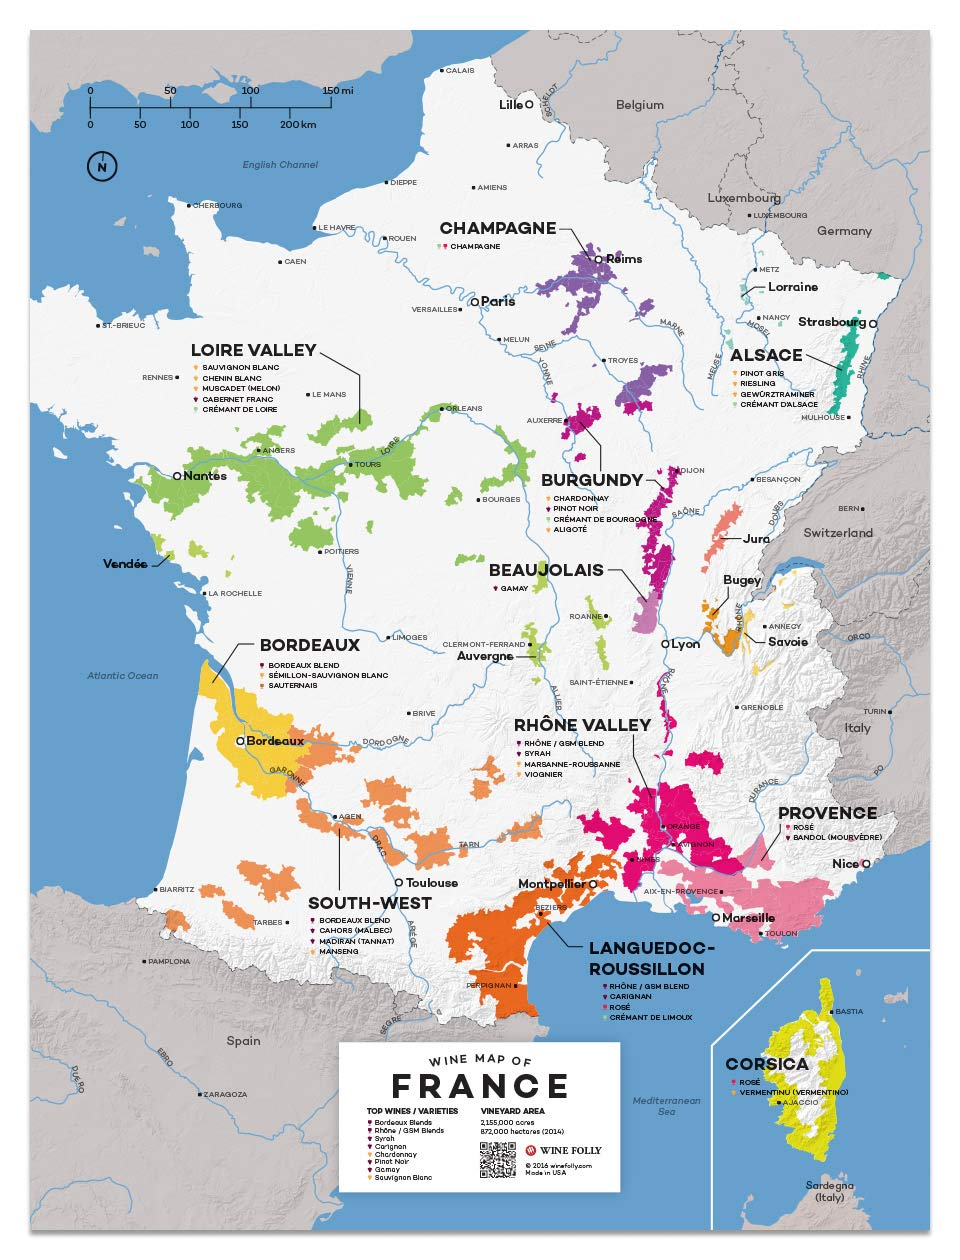 Map Of France To Print.Wine Folly France Wine Map Poster Print 12 X 16